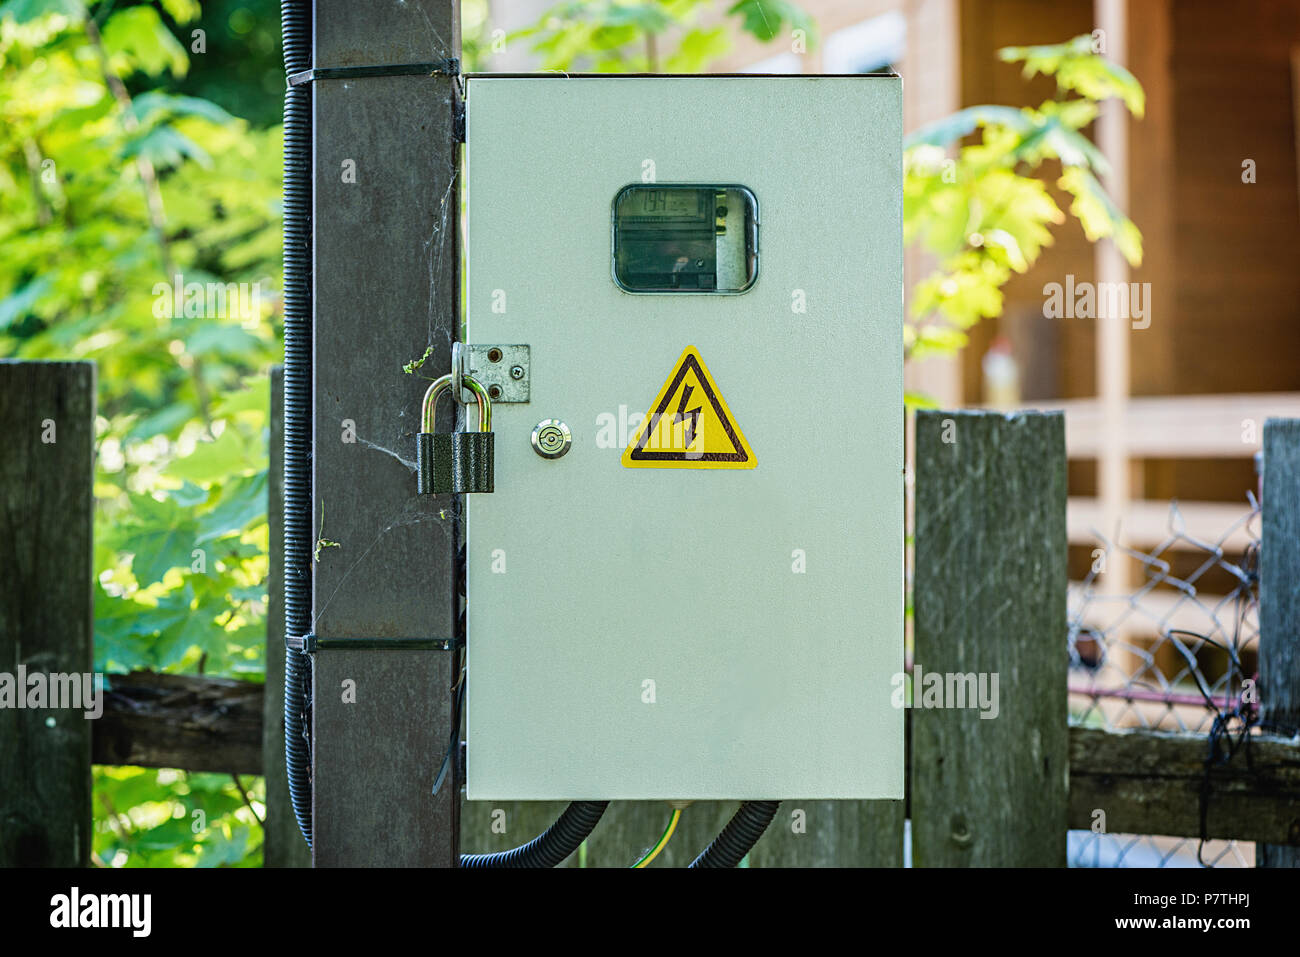 A electric power meter measuring power usage in the box. - Stock Image